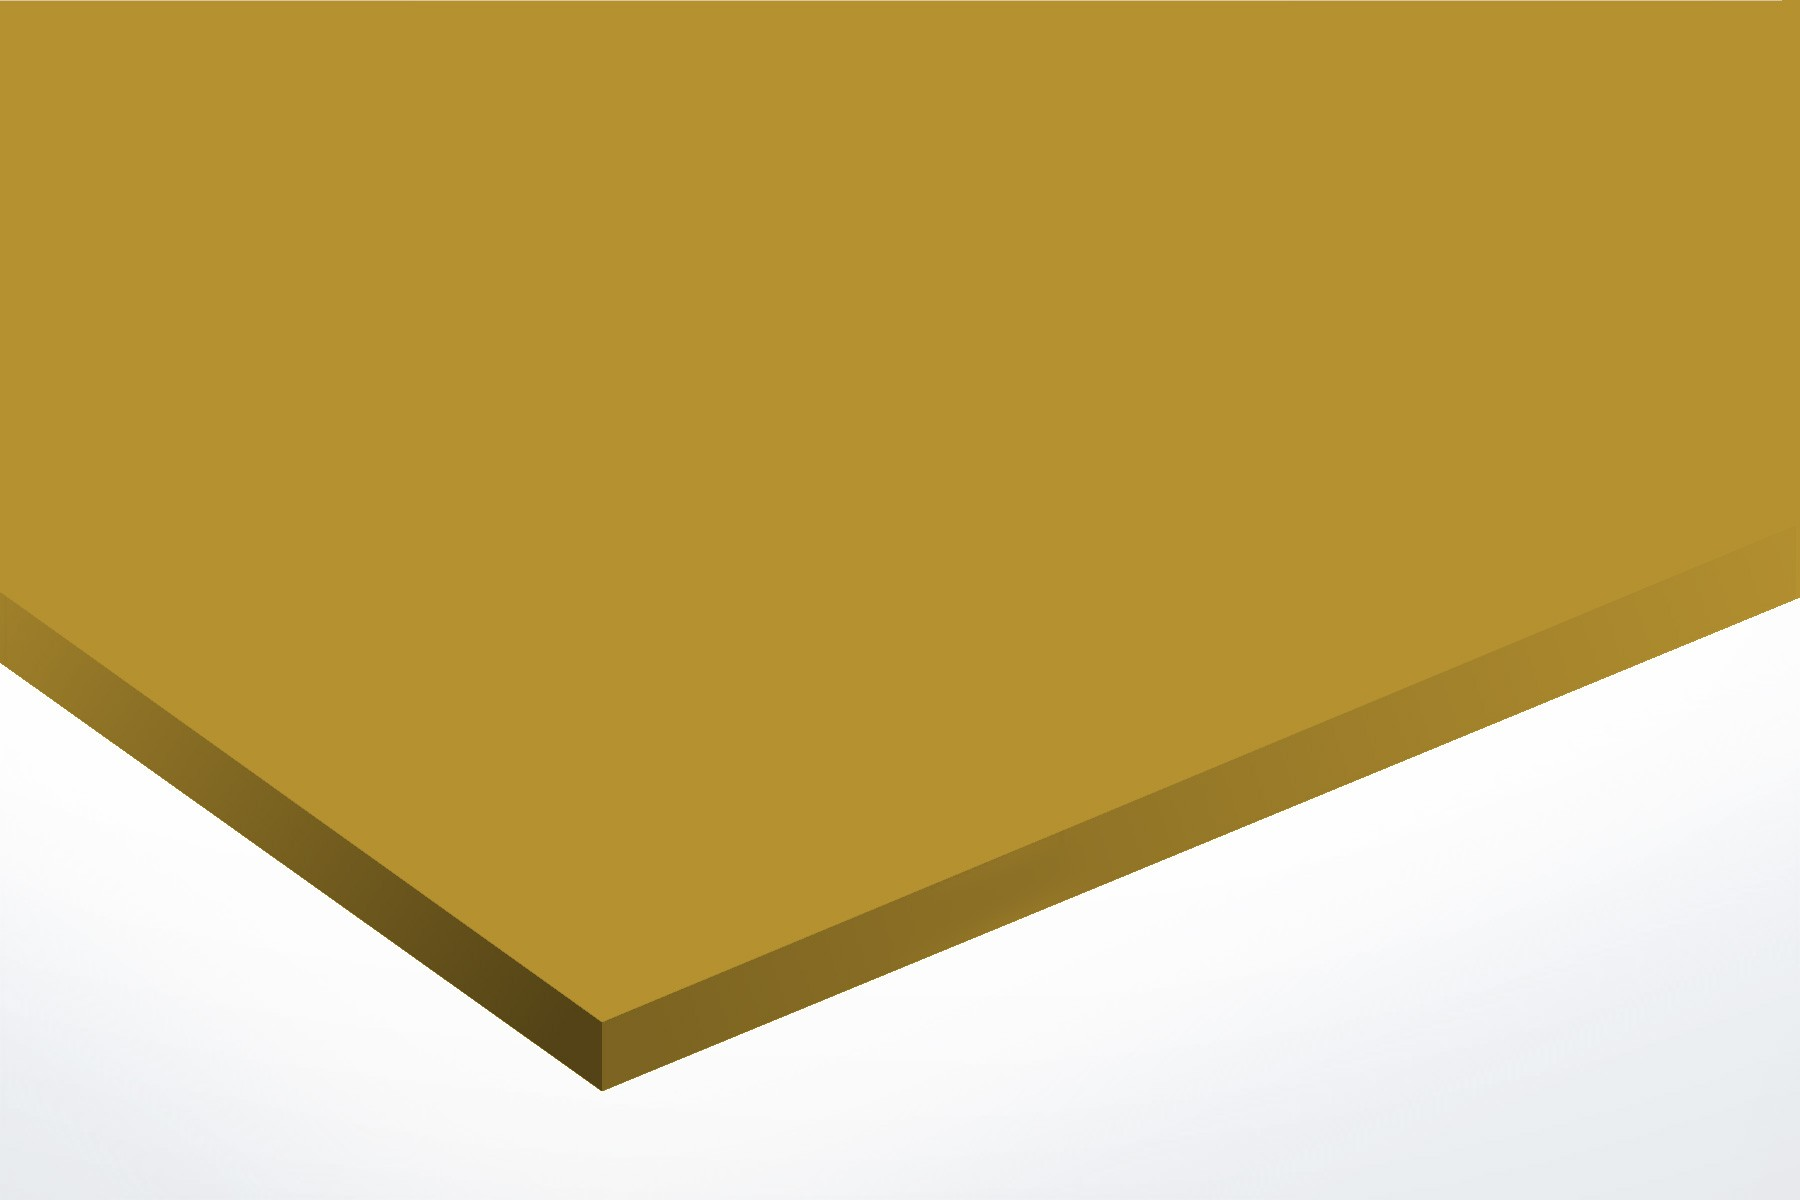 Anodised Aluminium Gold, Matte, 1.5mm x 1000mm x 500mm